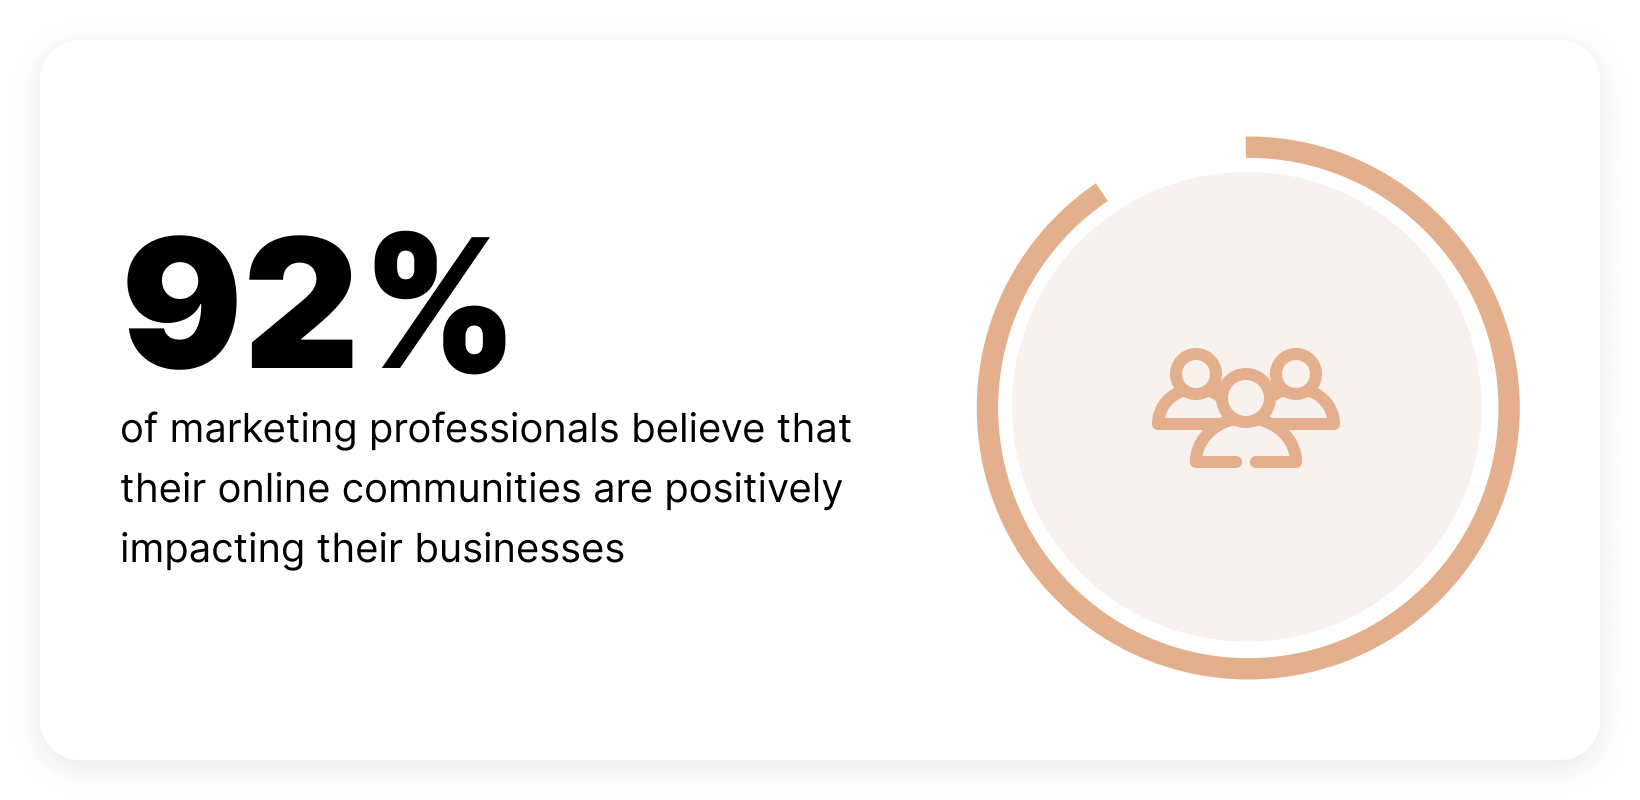 92% of marketing professionals believe that their online communities are positively impacting their businesses